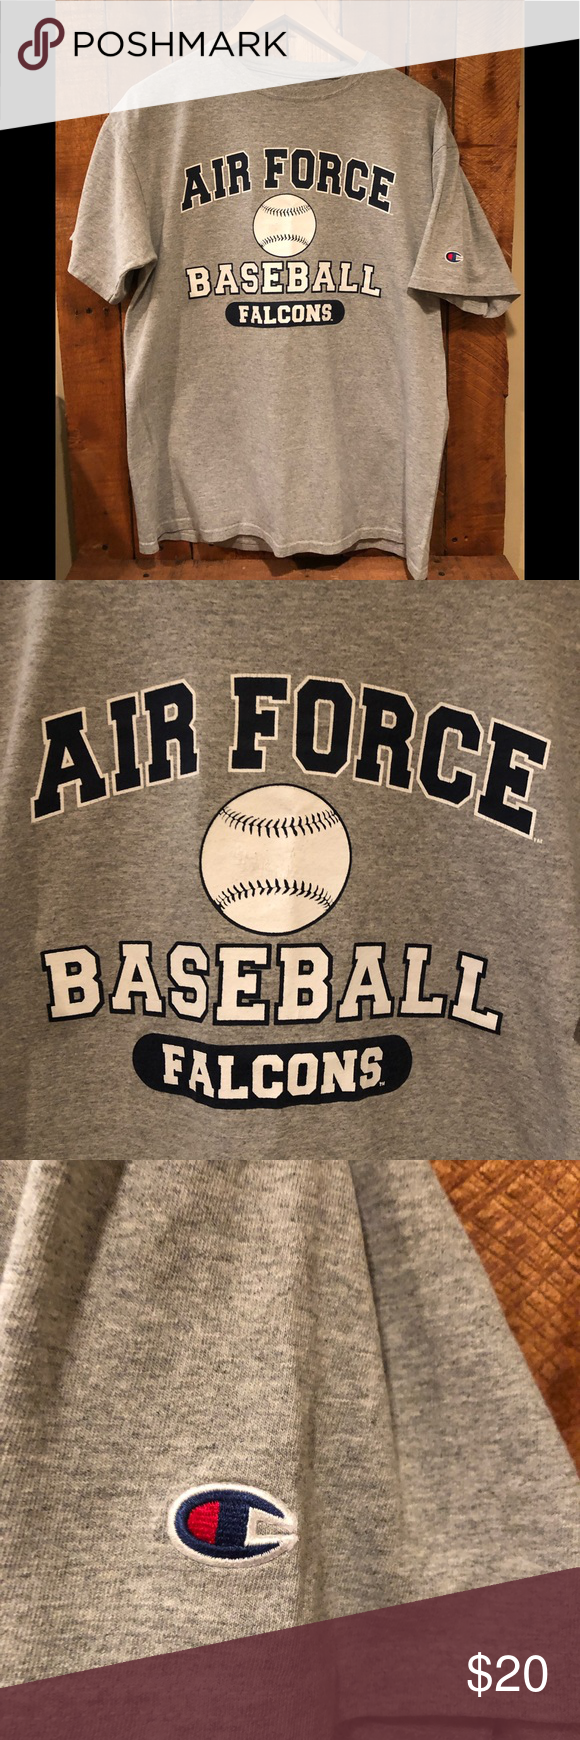 Air Force Academy Baseball T Shirt Size L Falcons Baseball Season Is Underway Show Your Support With This Champion Athletic T Shirt Baseball Air Force Academy Baseball Season